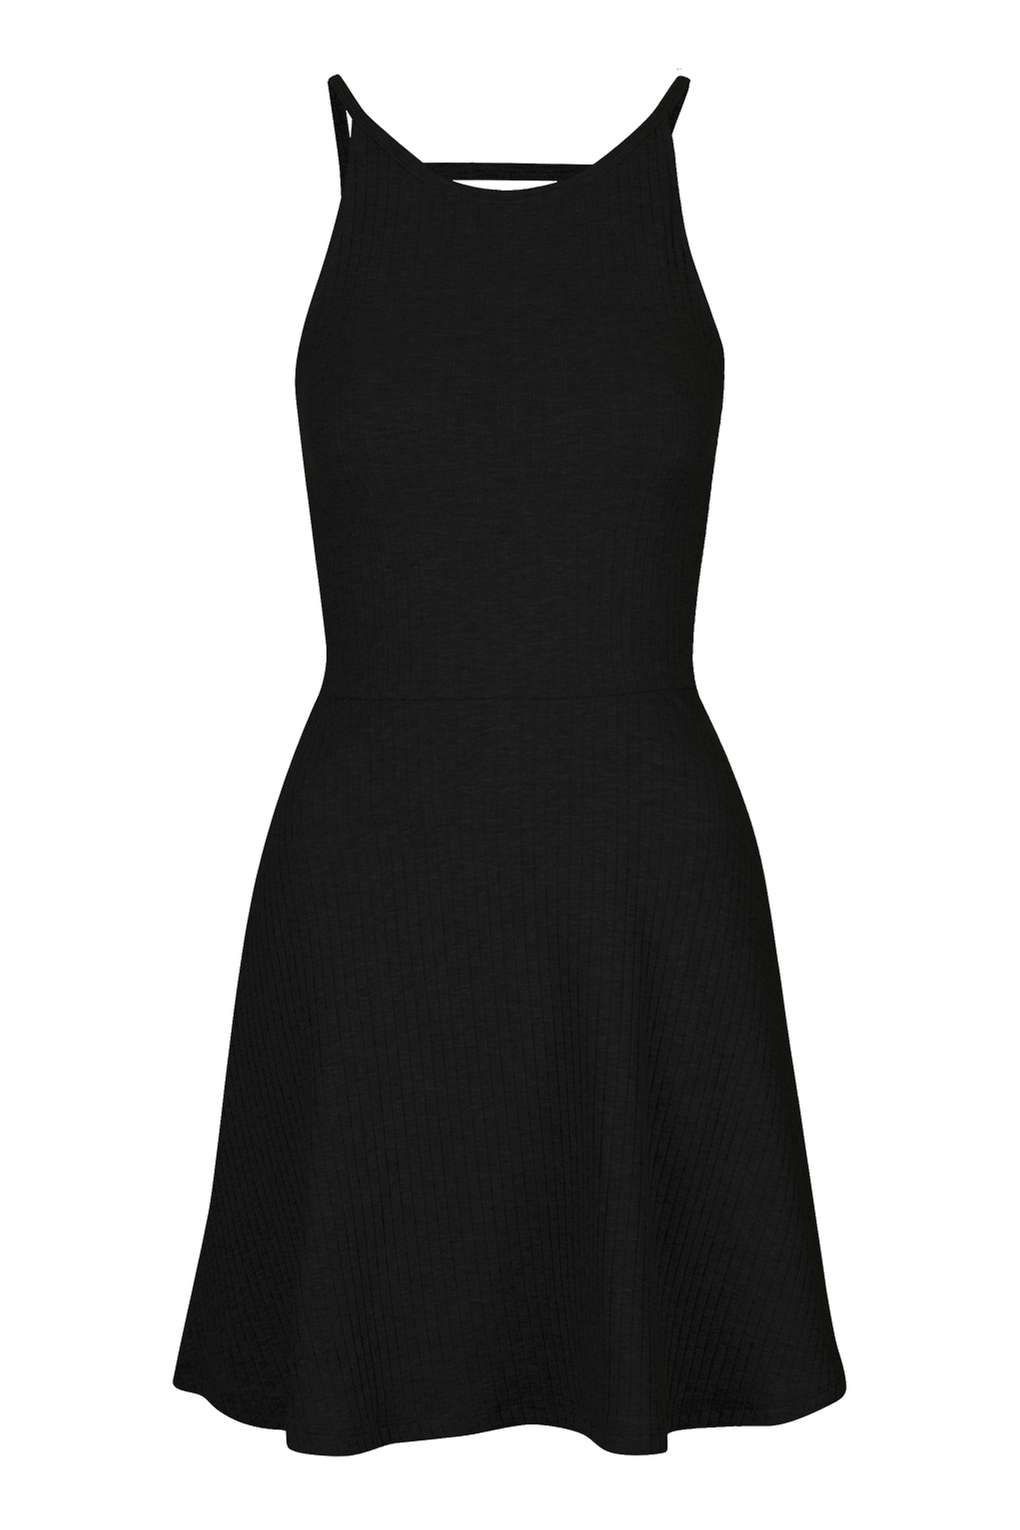 TALL Strappy Back Flippy Dress - Topshop USA. Carousel Image 0 Skater Dress d2220735b